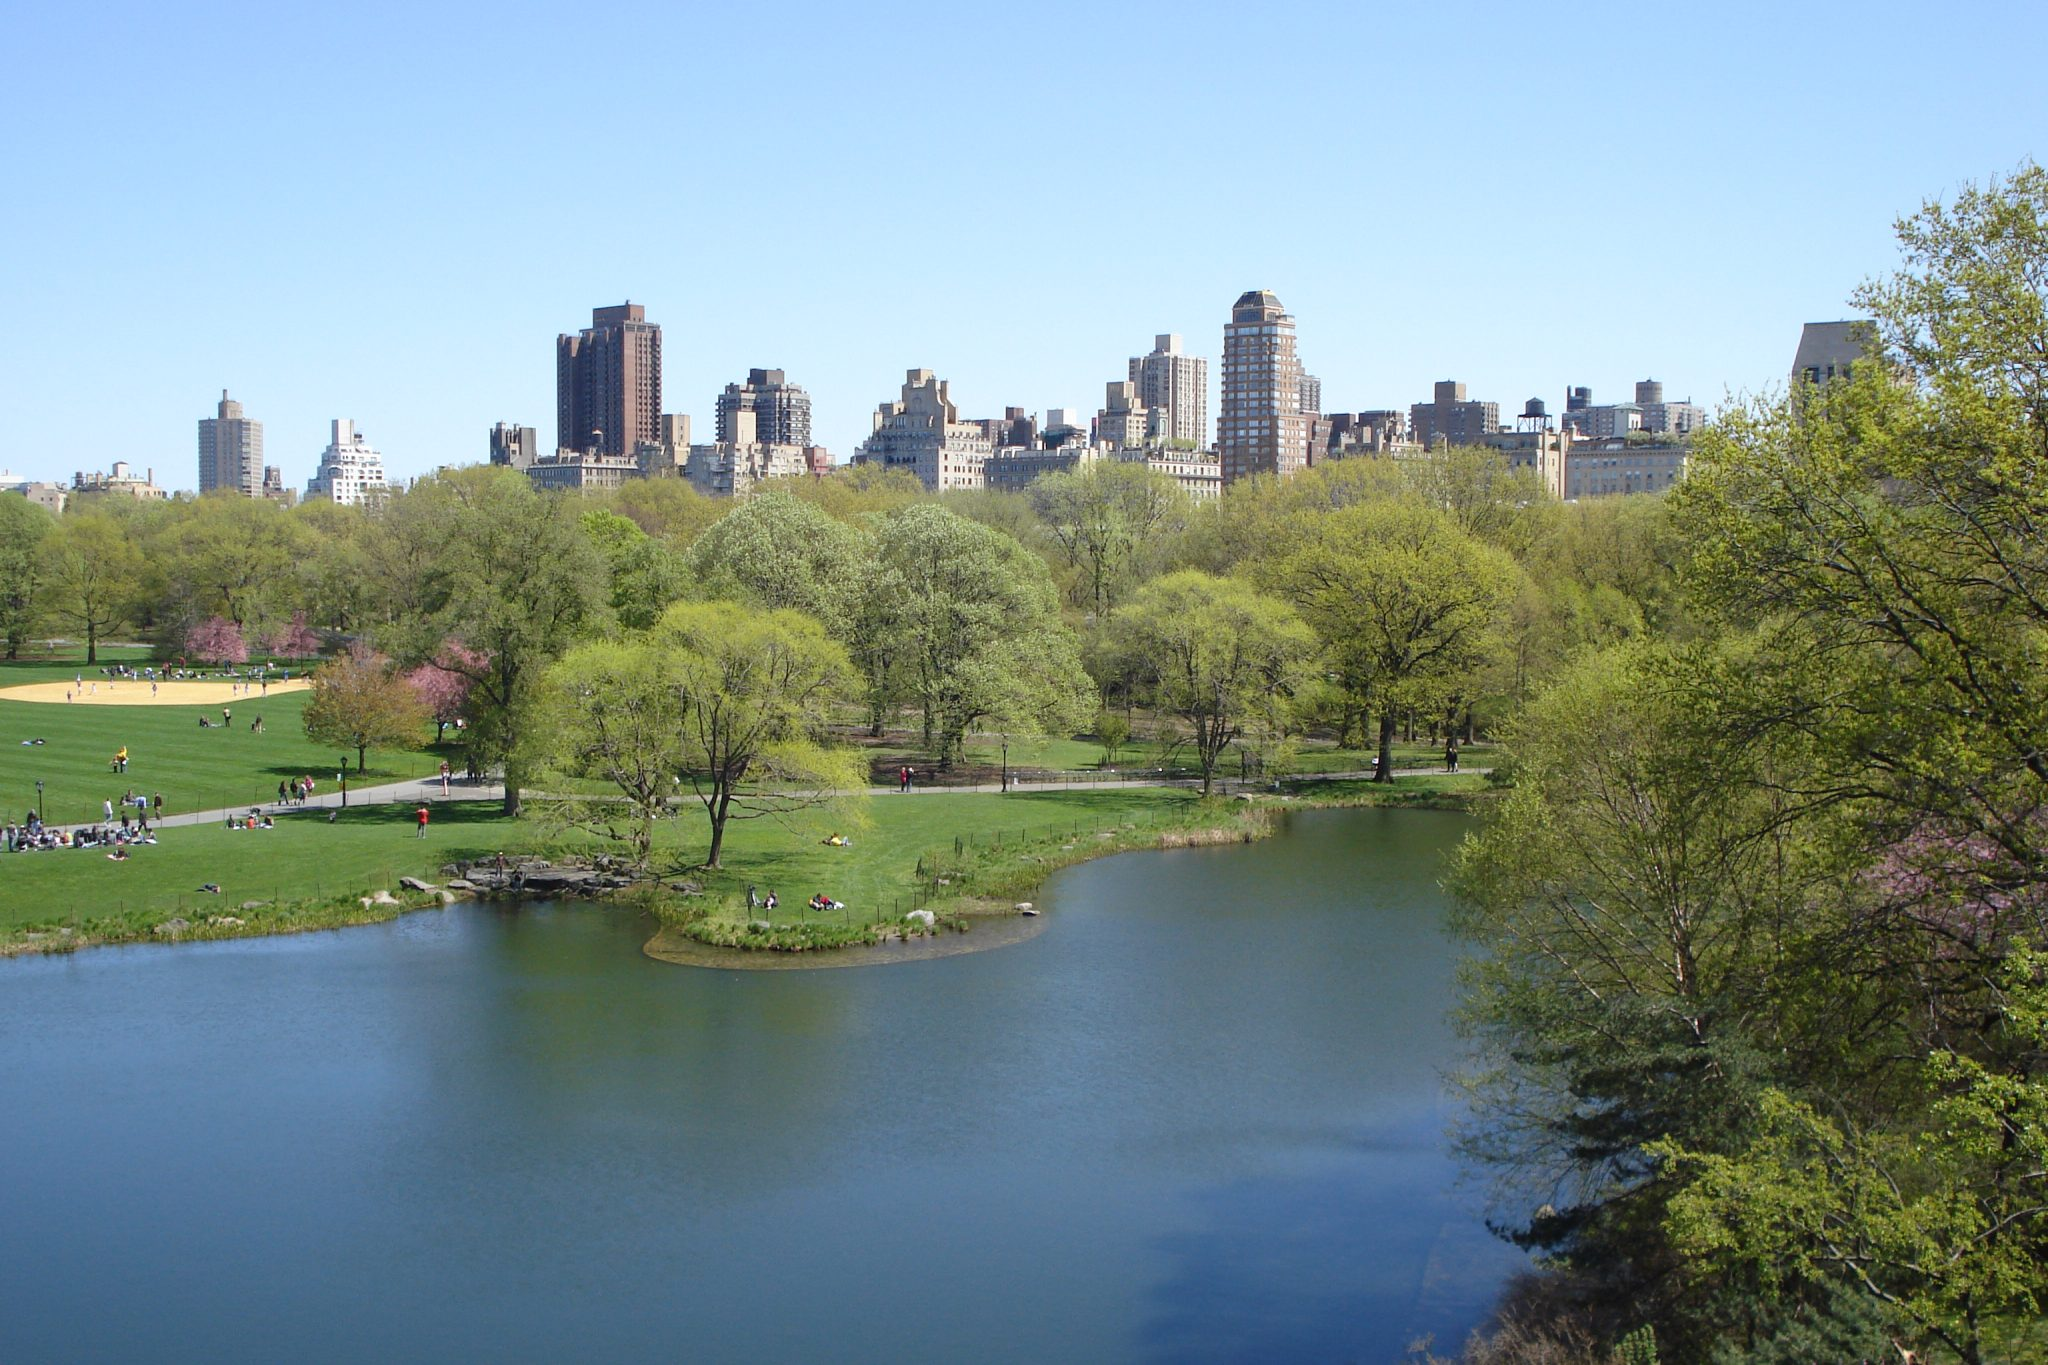 Central Park April 2010 view of a lake with grass and trees with the city in the background